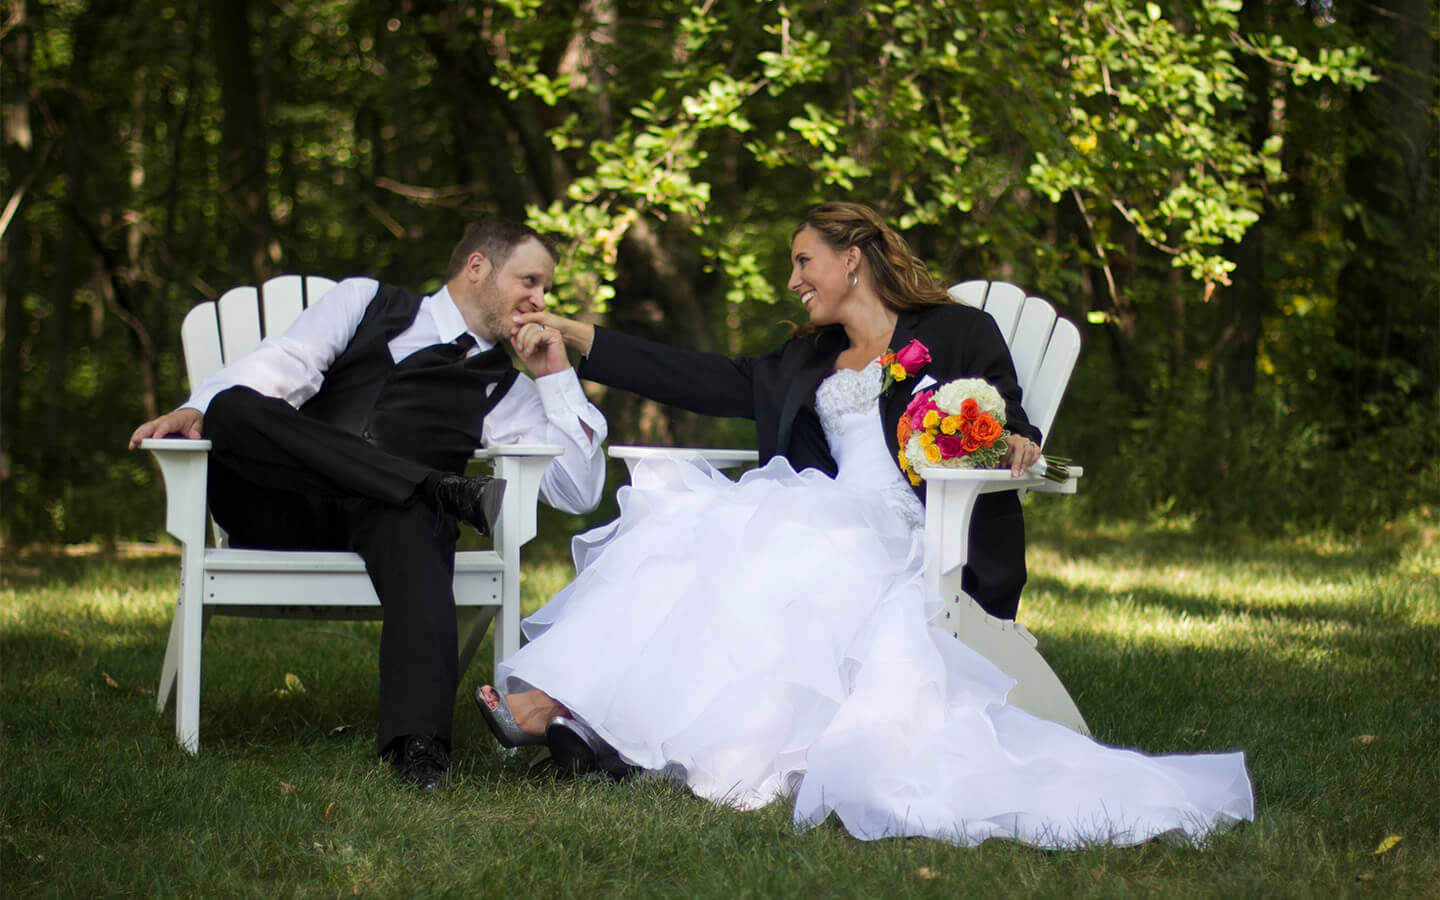 Allegan, Michigan Wedding bride and groom sitting on white chairs